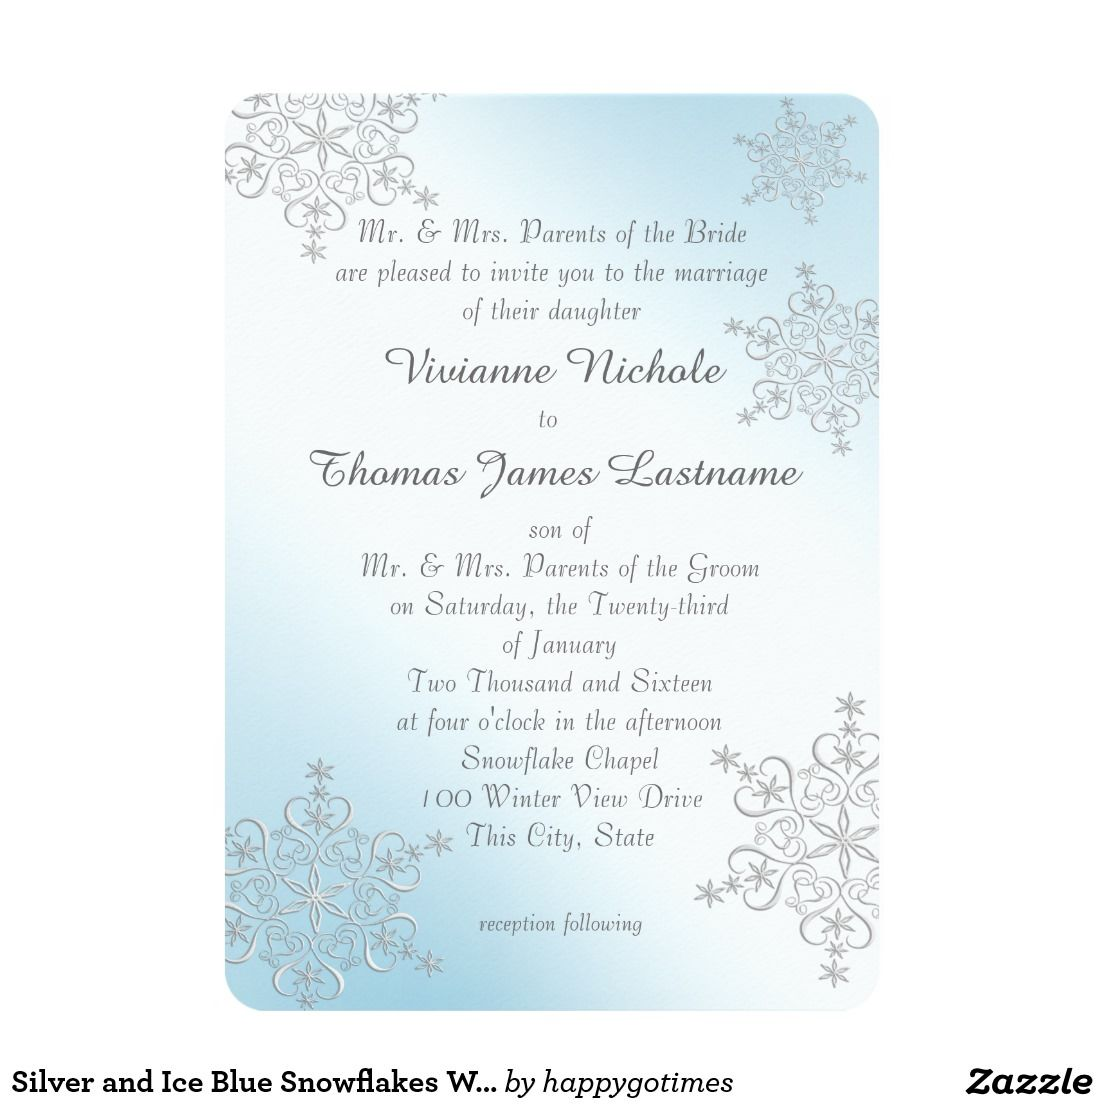 Silver and Ice Blue Snowflakes Wedding Card | Wedding card, Silver ...